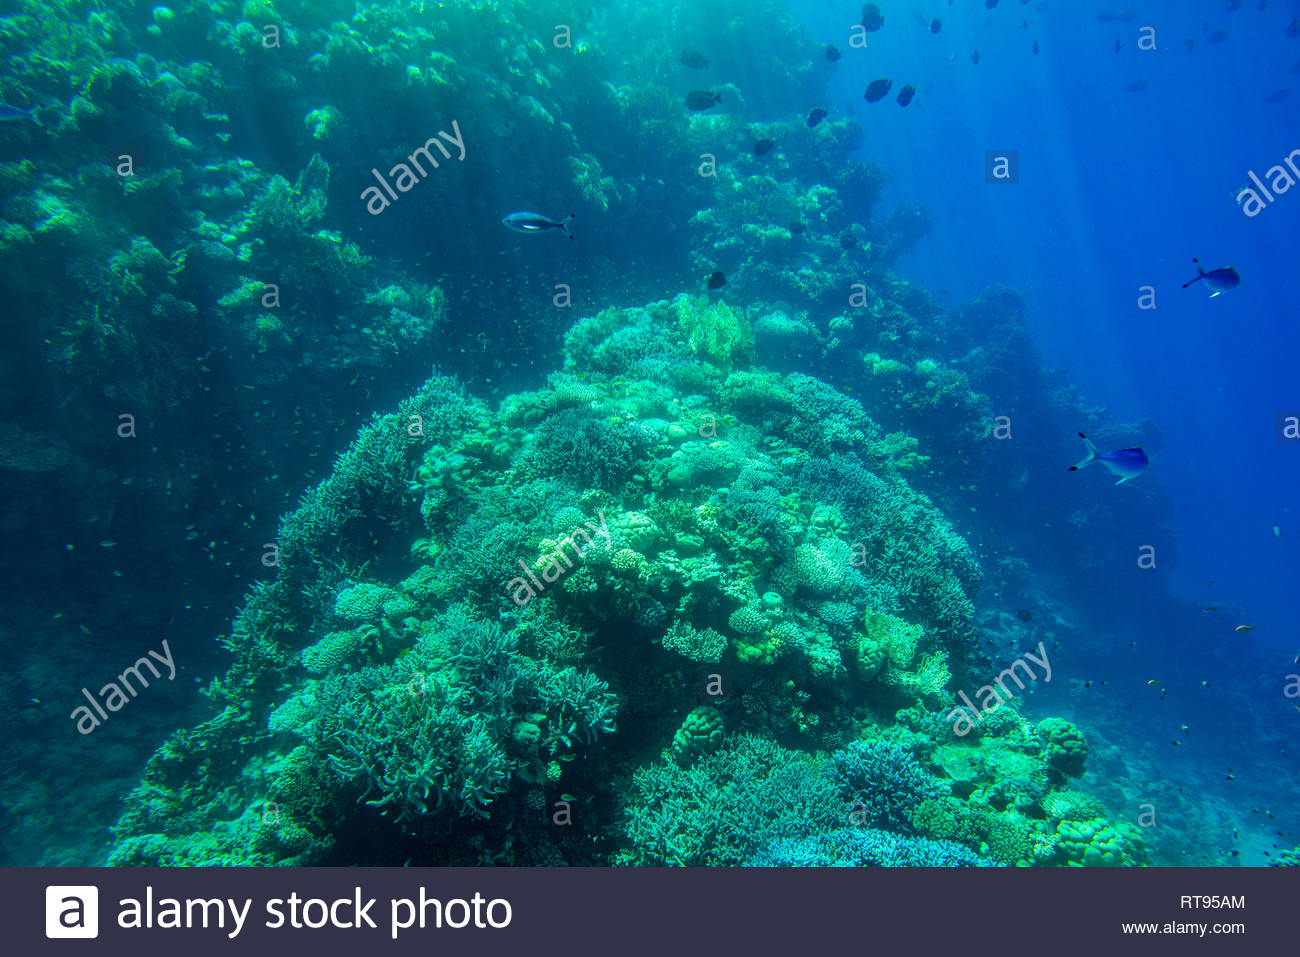 Aquatic Deep Blue Seabed Underwater Background Stock Photo 1300x957